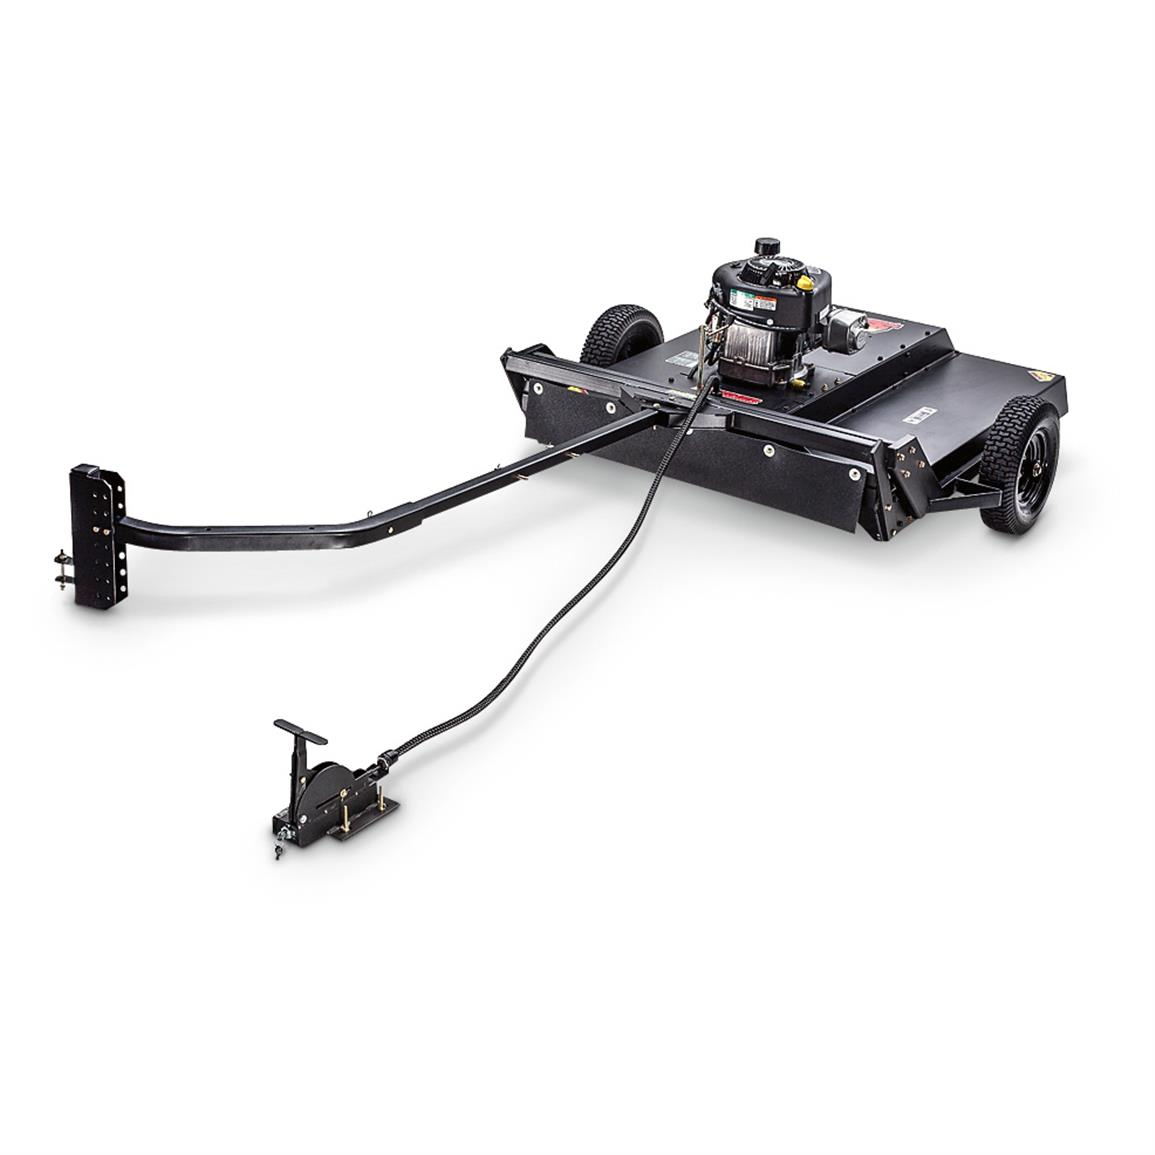 Swisher 44 inch Rough Cut Tow-behind Trailcutter